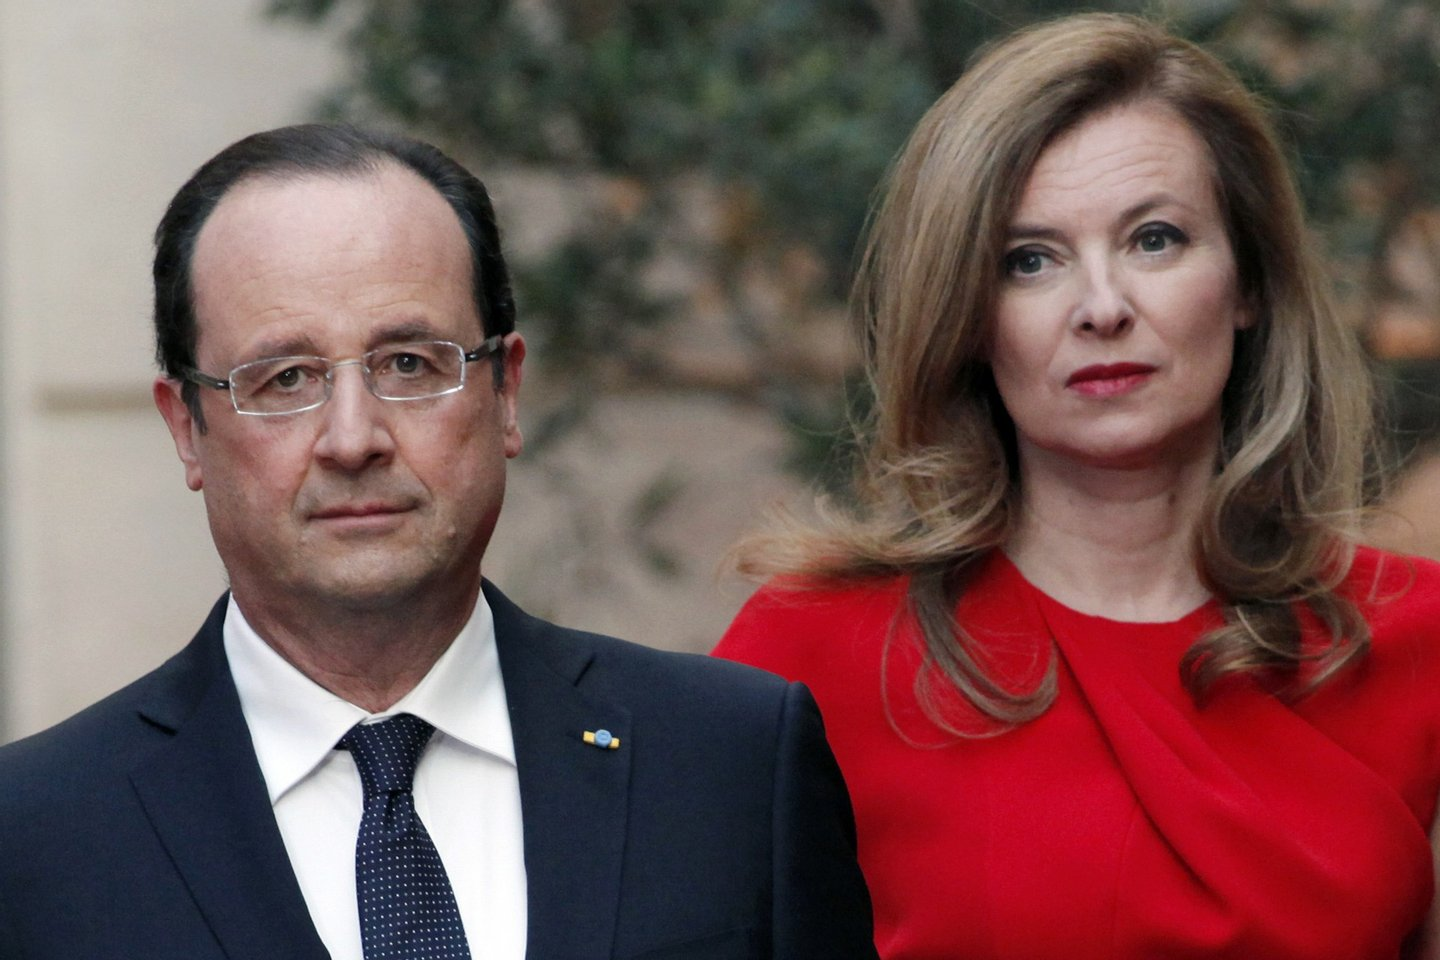 French President Francois Hollande and his companion Valerie Trierweiler arrive for a state dinner at the Elysee presidential palace in Paris on May 7, 2013, as part of Poland's president two-day visit to France. AFP PHOTO / POOL / Thibault Camus (Photo credit should read THIBAULT CAMUS/AFP/Getty Images)